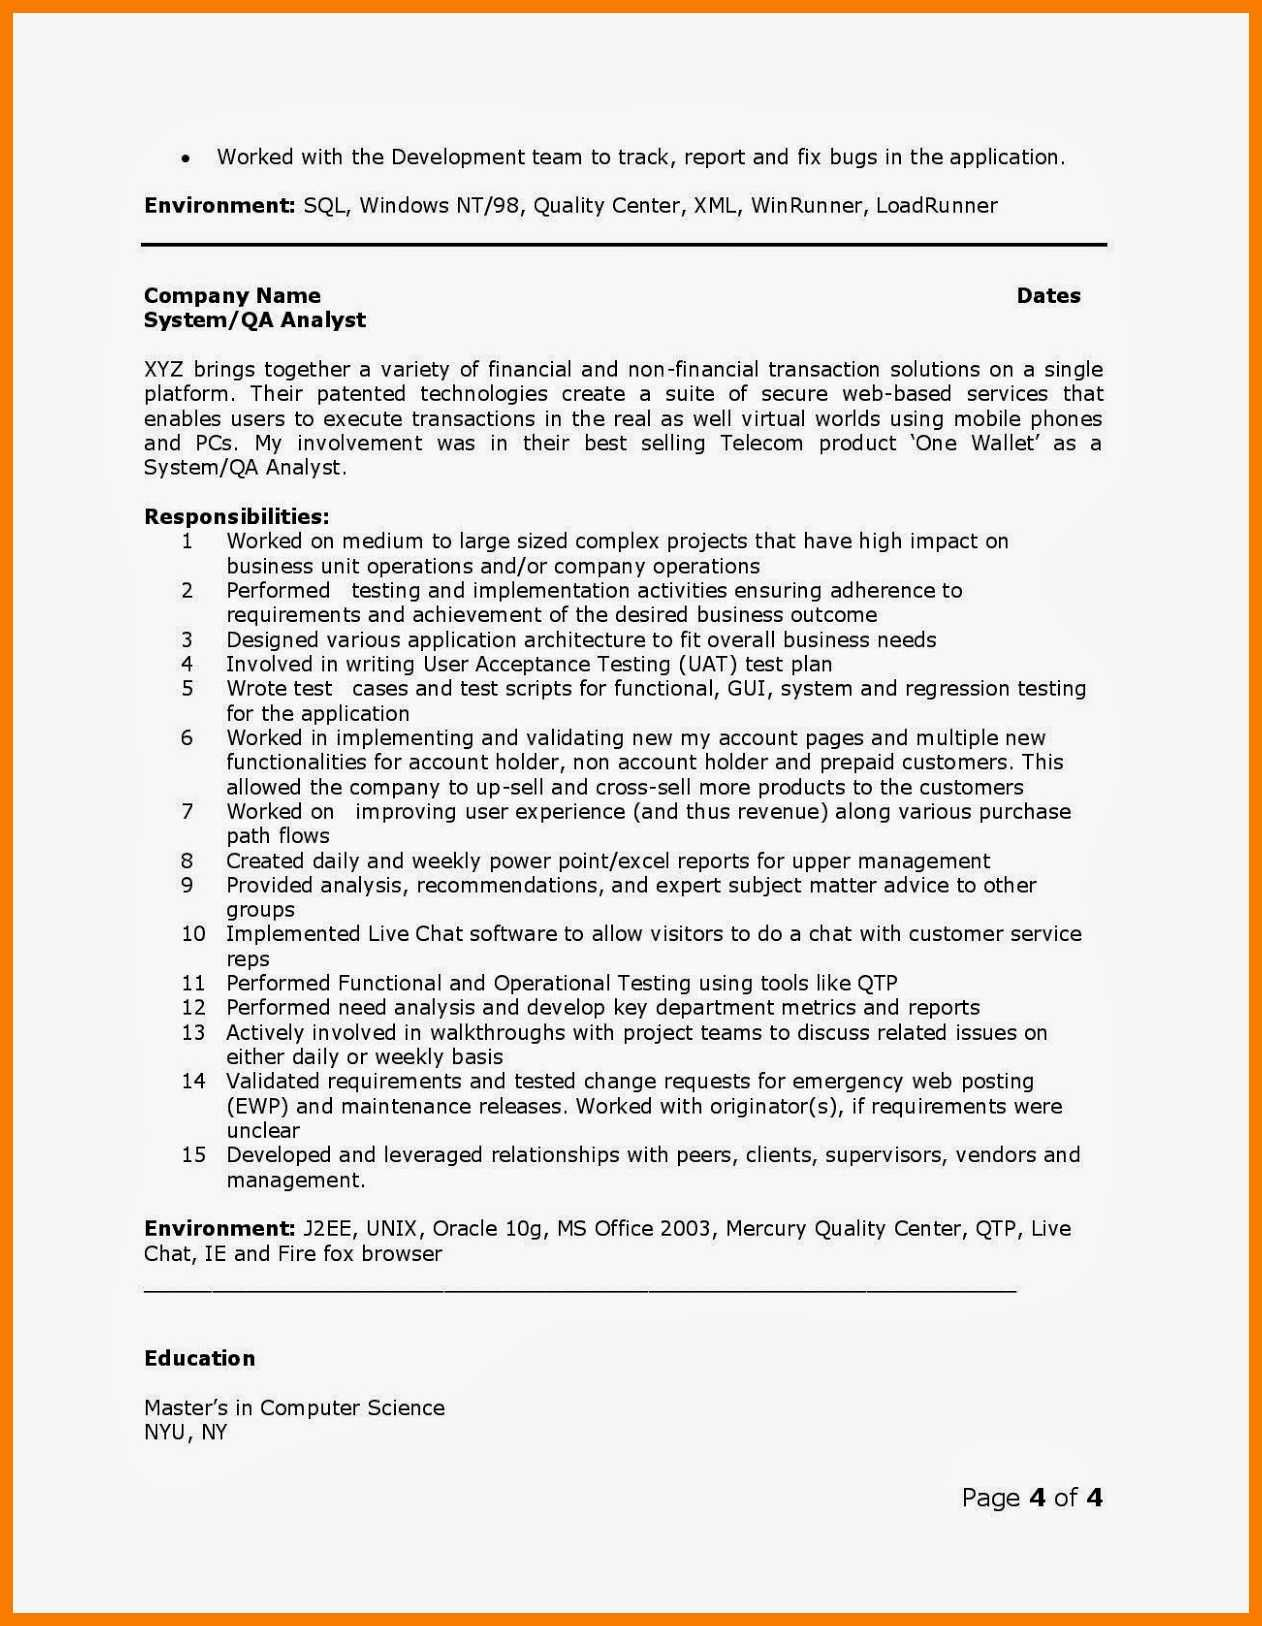 52 Inspiring Images Of Sample Resume Objective Quality Assurance Resume Objective Resume Objective Examples Resume